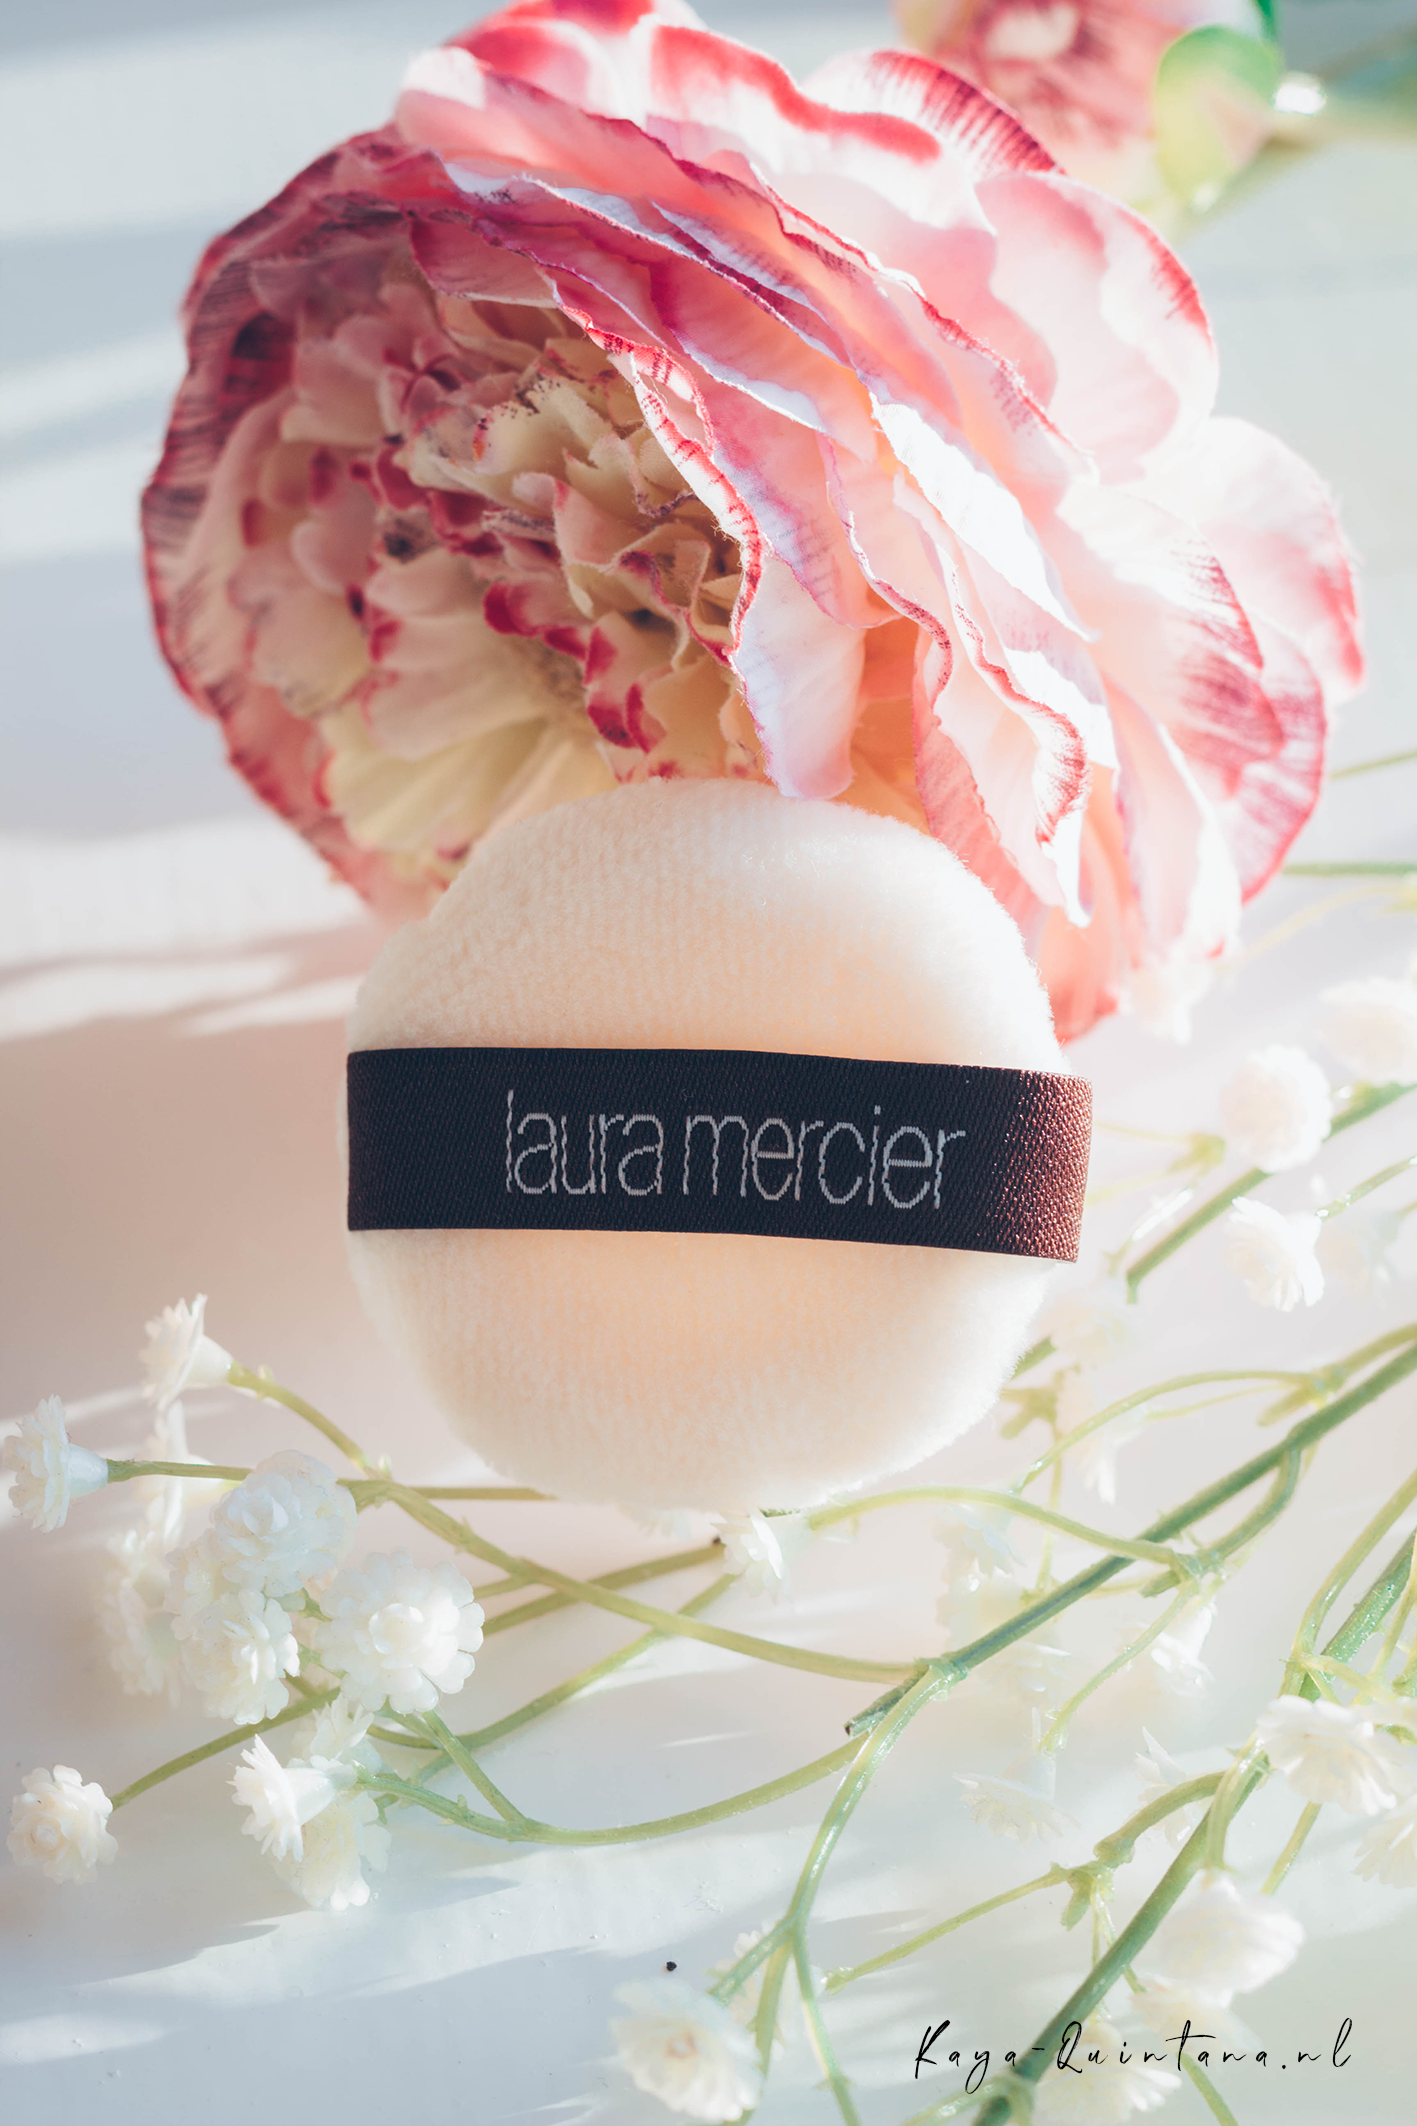 Laura mercier powder puff